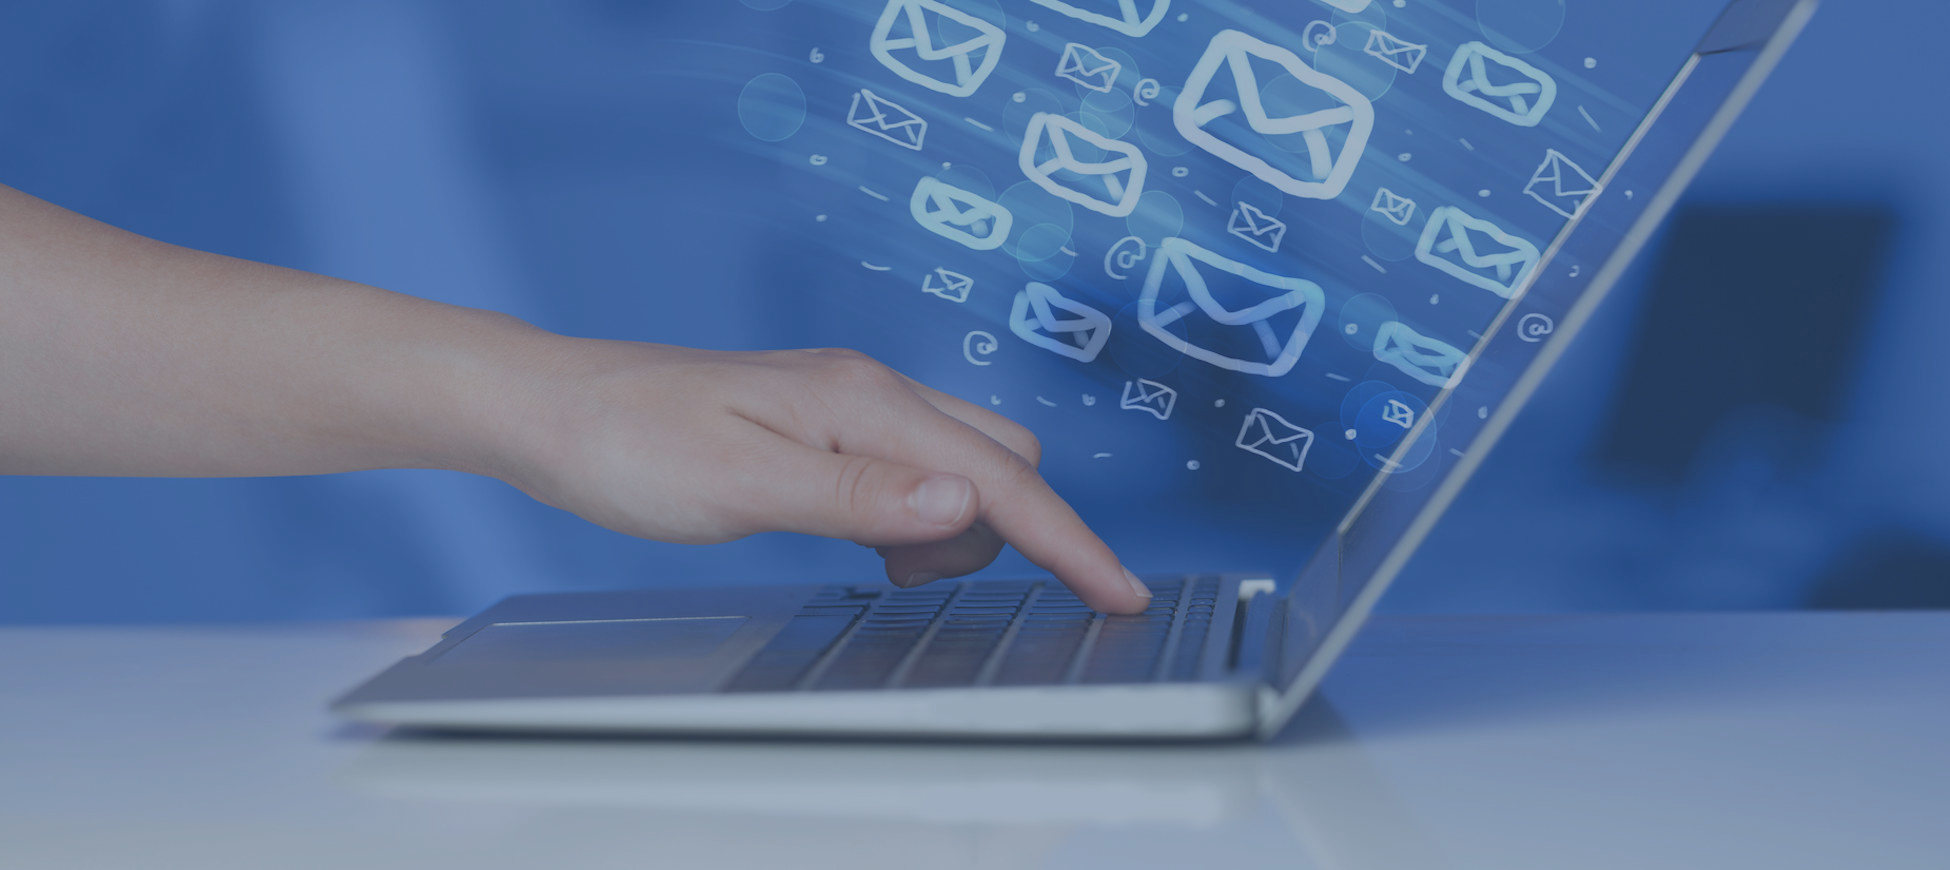 Send marketing email messages to hundreds or even thousands of recipients, then monitor who opens the emails to help you target your marketing and lead opportunities.